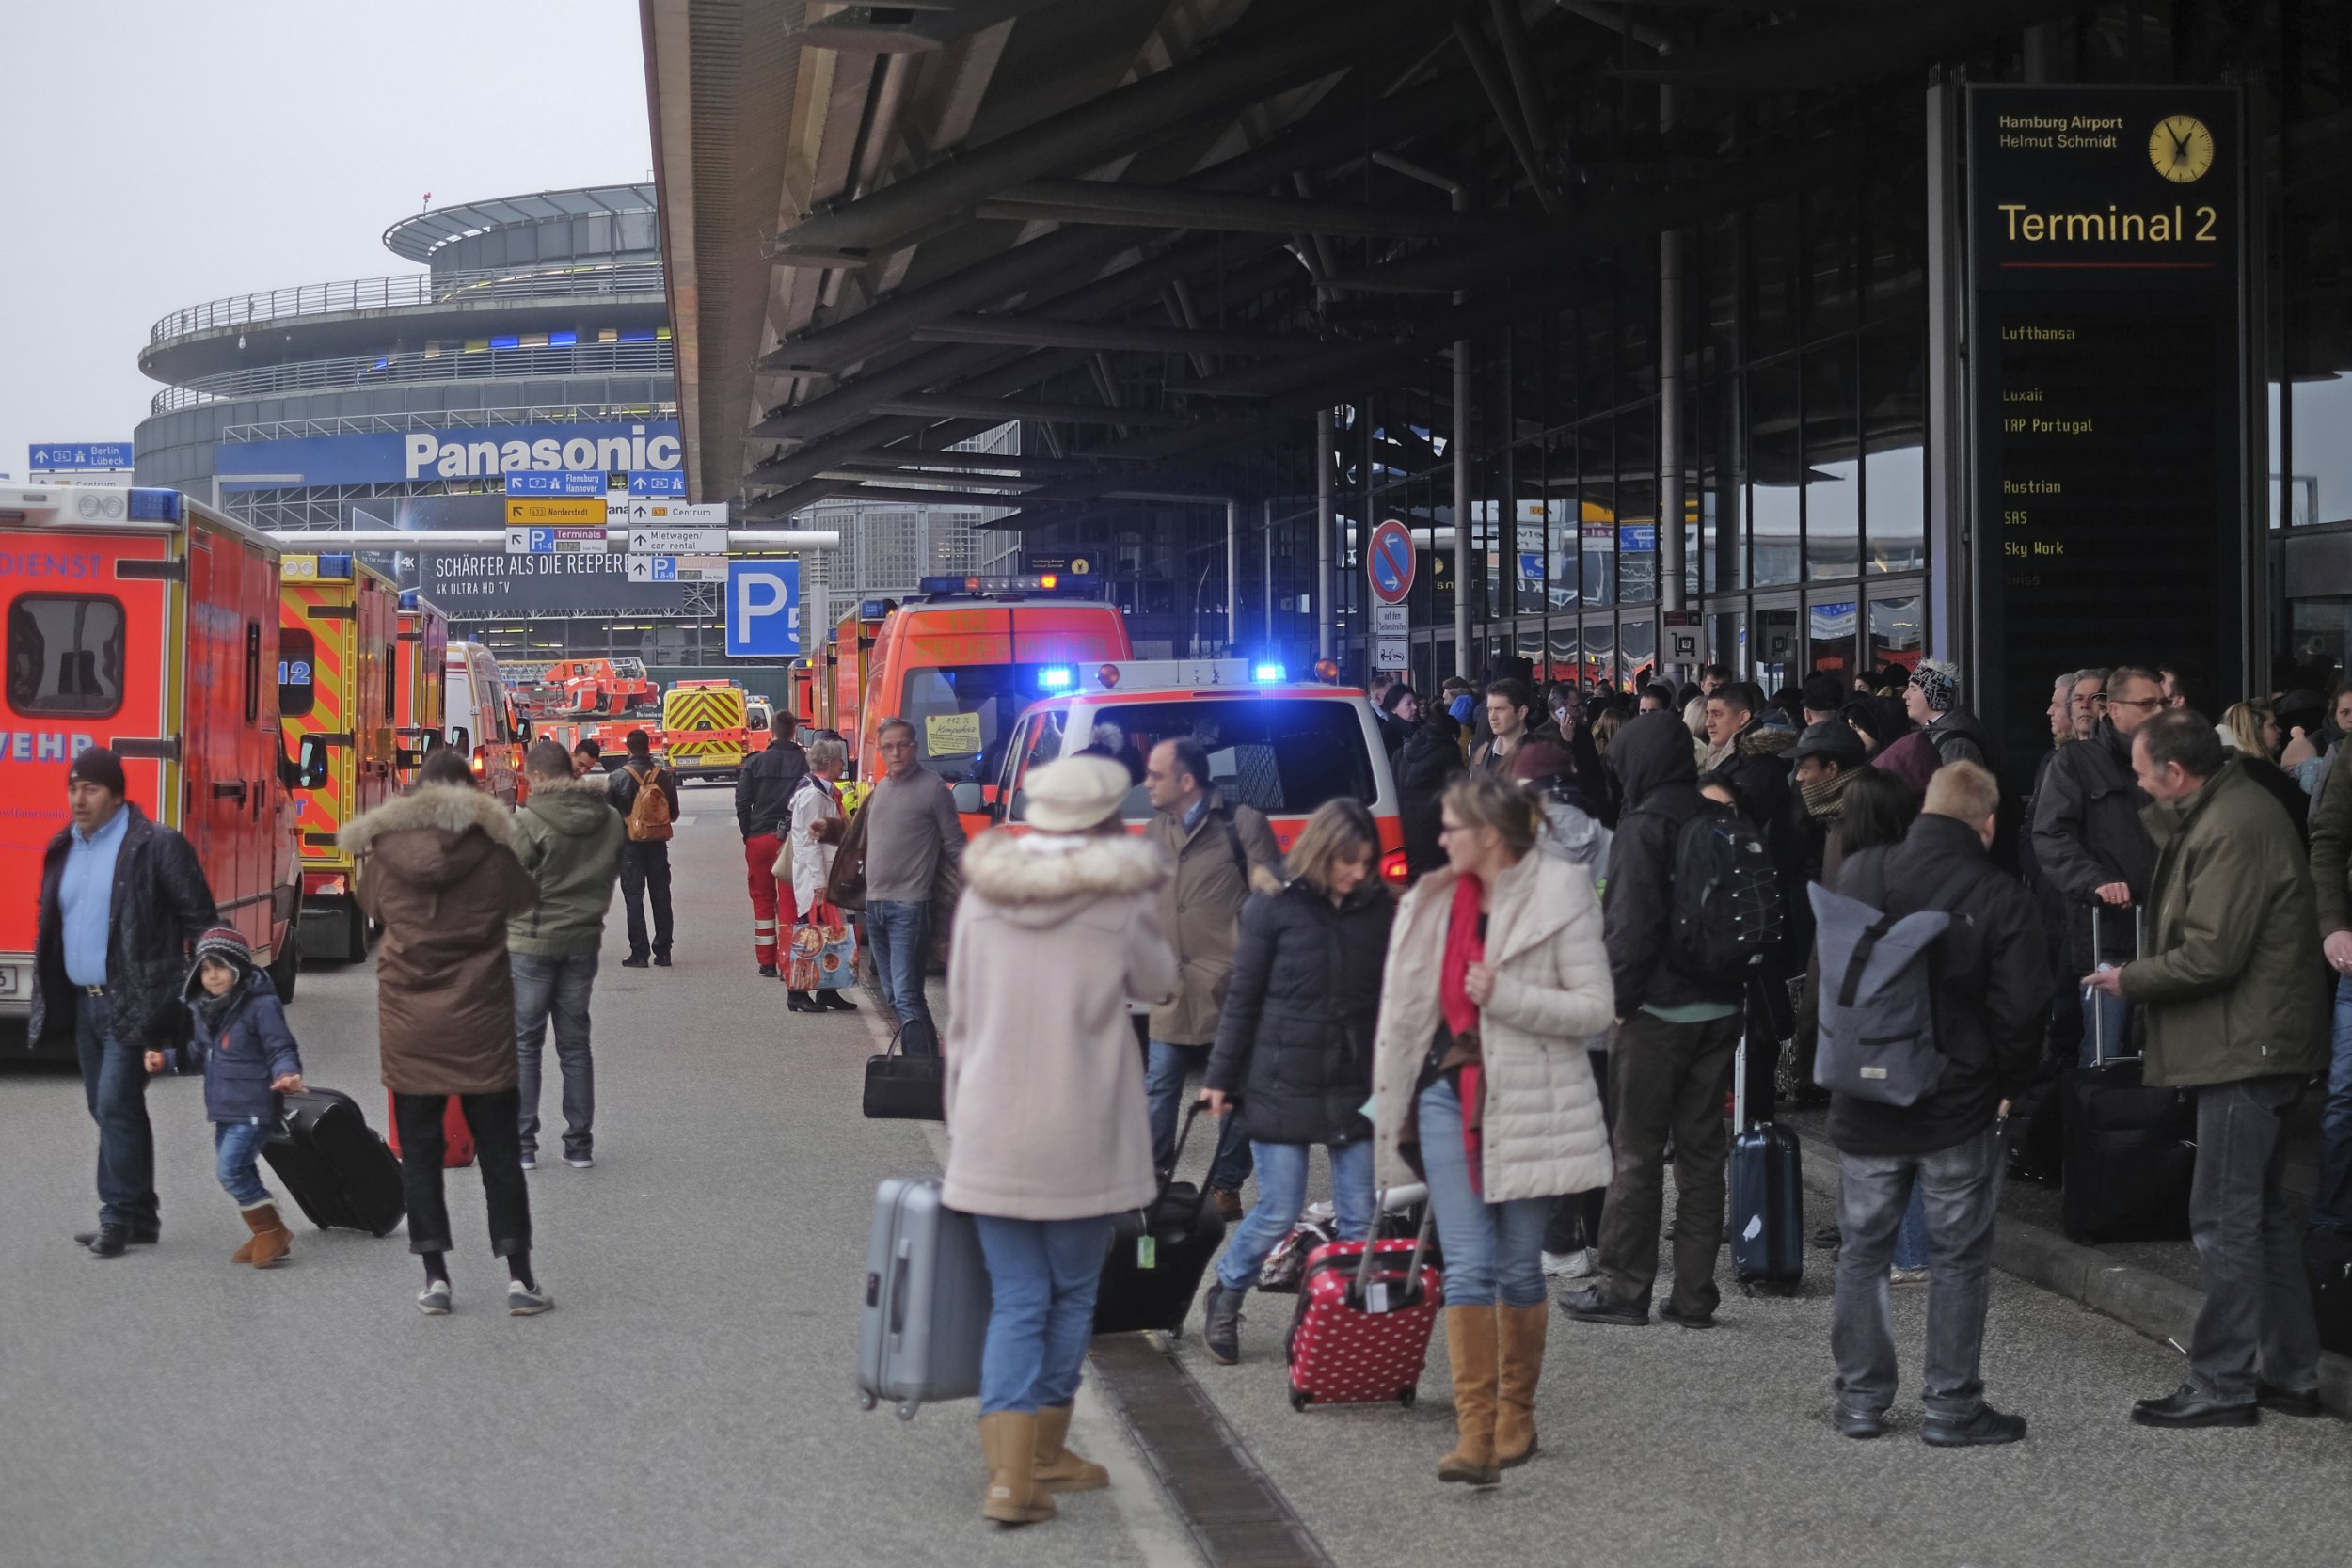 Travellers wait outside the Hamburg, northern Germany, airport Sunday, Feb. 12, 2017 after after several people were injured by an unknown toxic that likely spread through the airportsí air conditioning system. (Axel Heimken/dpa via AP)